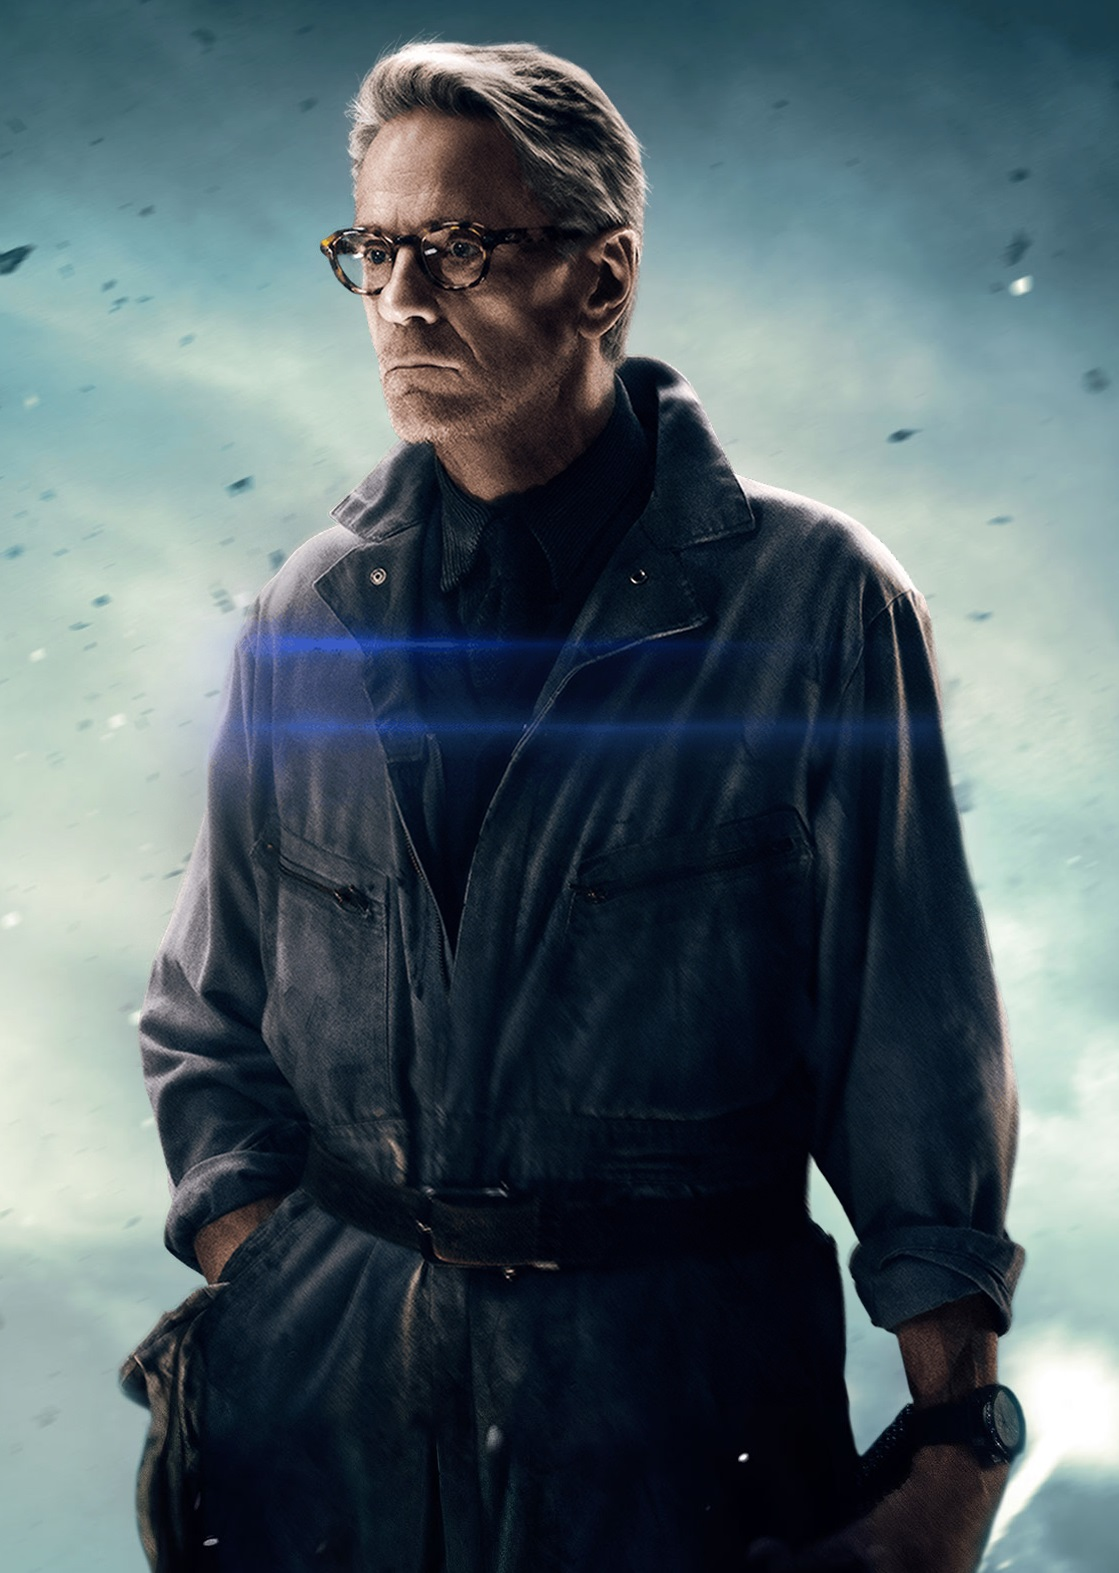 Alfred Pennyworth DC Extended Universe Heroes Wiki FANDOM powered by Wikia